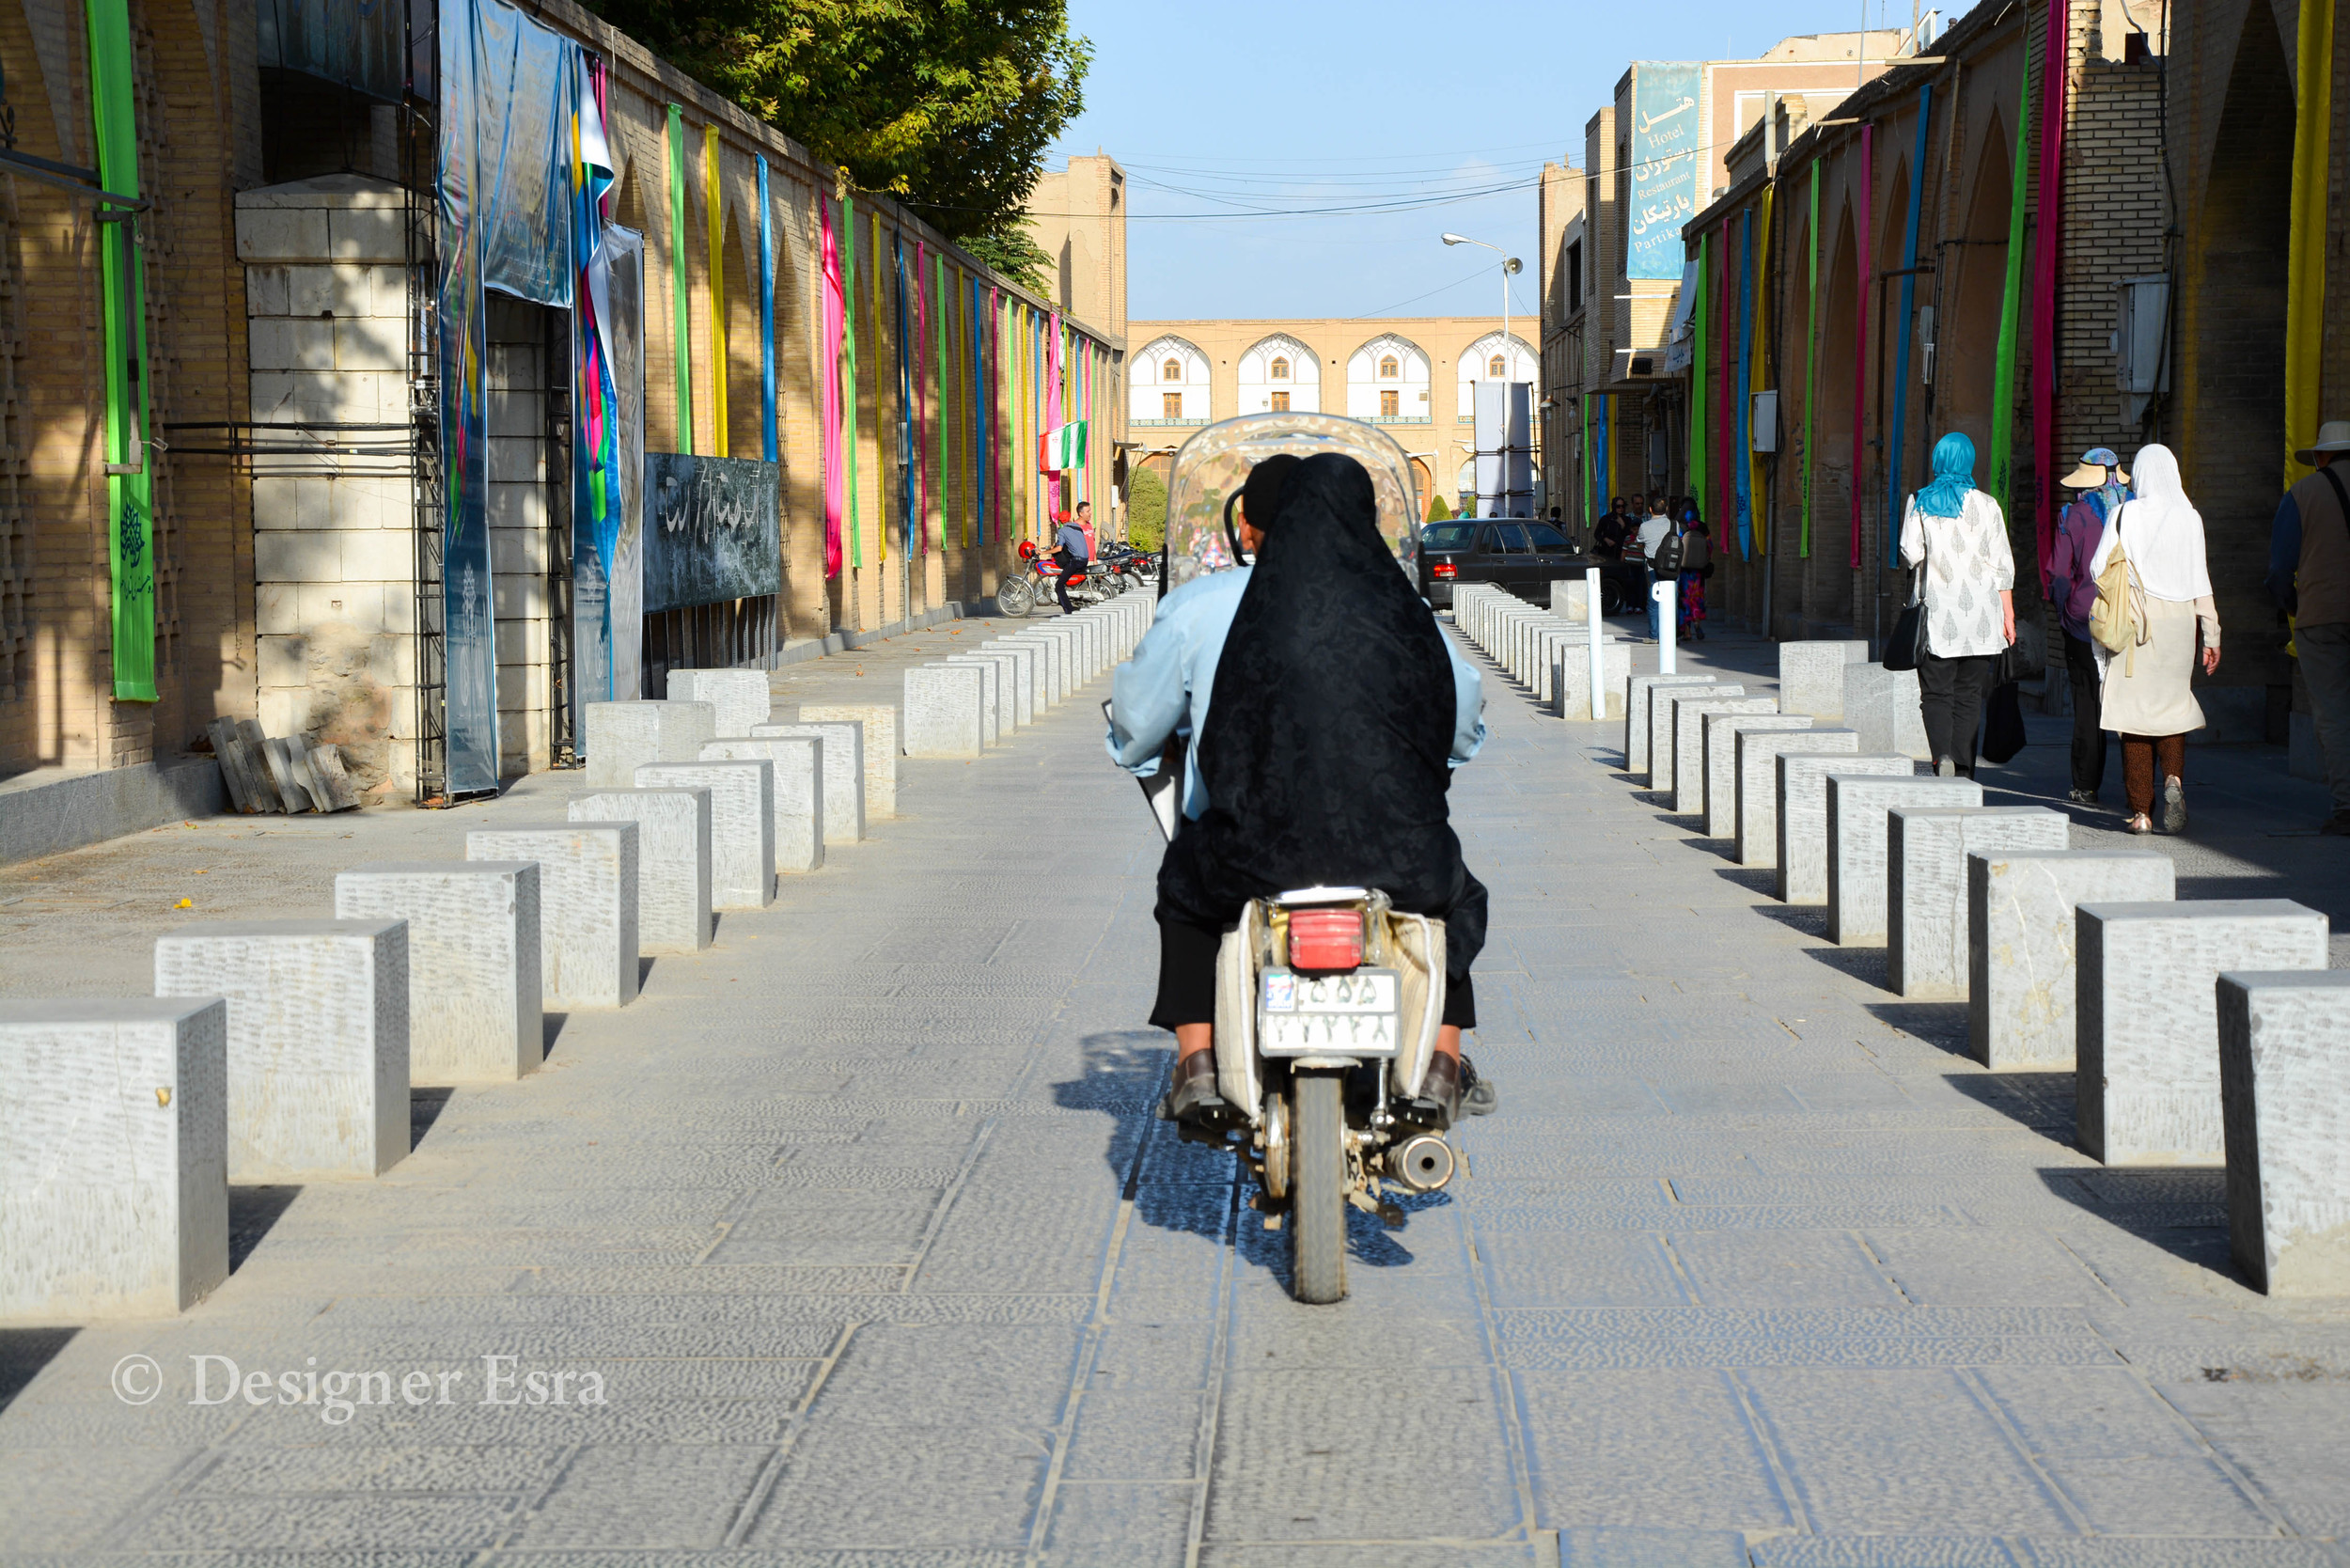 Lover on a Motorcycles in Iran